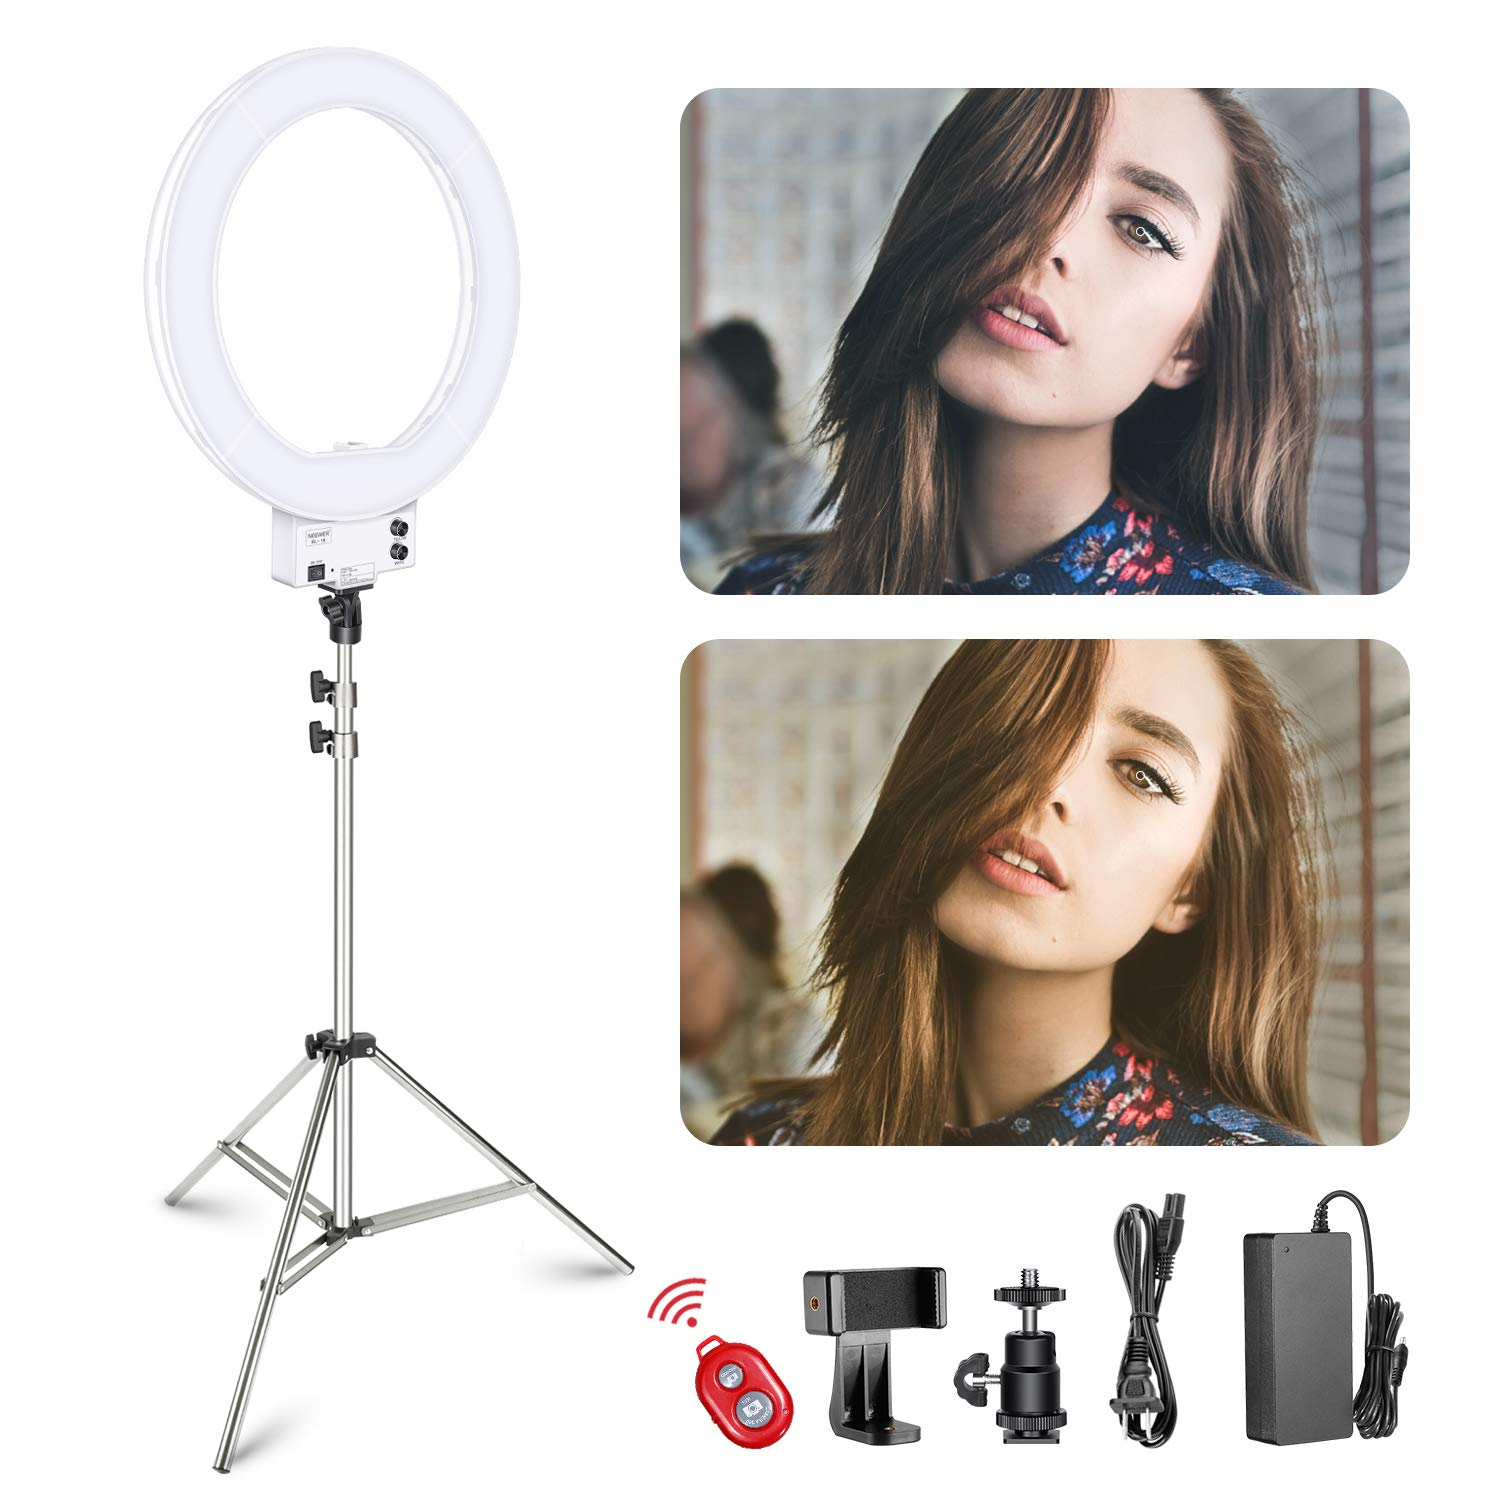 Neewer 18-inch White LED Ring Light with Silver Light Stand Lighting Kit Dimmable 50W 3200-5600K with Soft Filter, Hot Shoe Adapter, Cellphone Holder for Make-up Video Shooting by Neewer